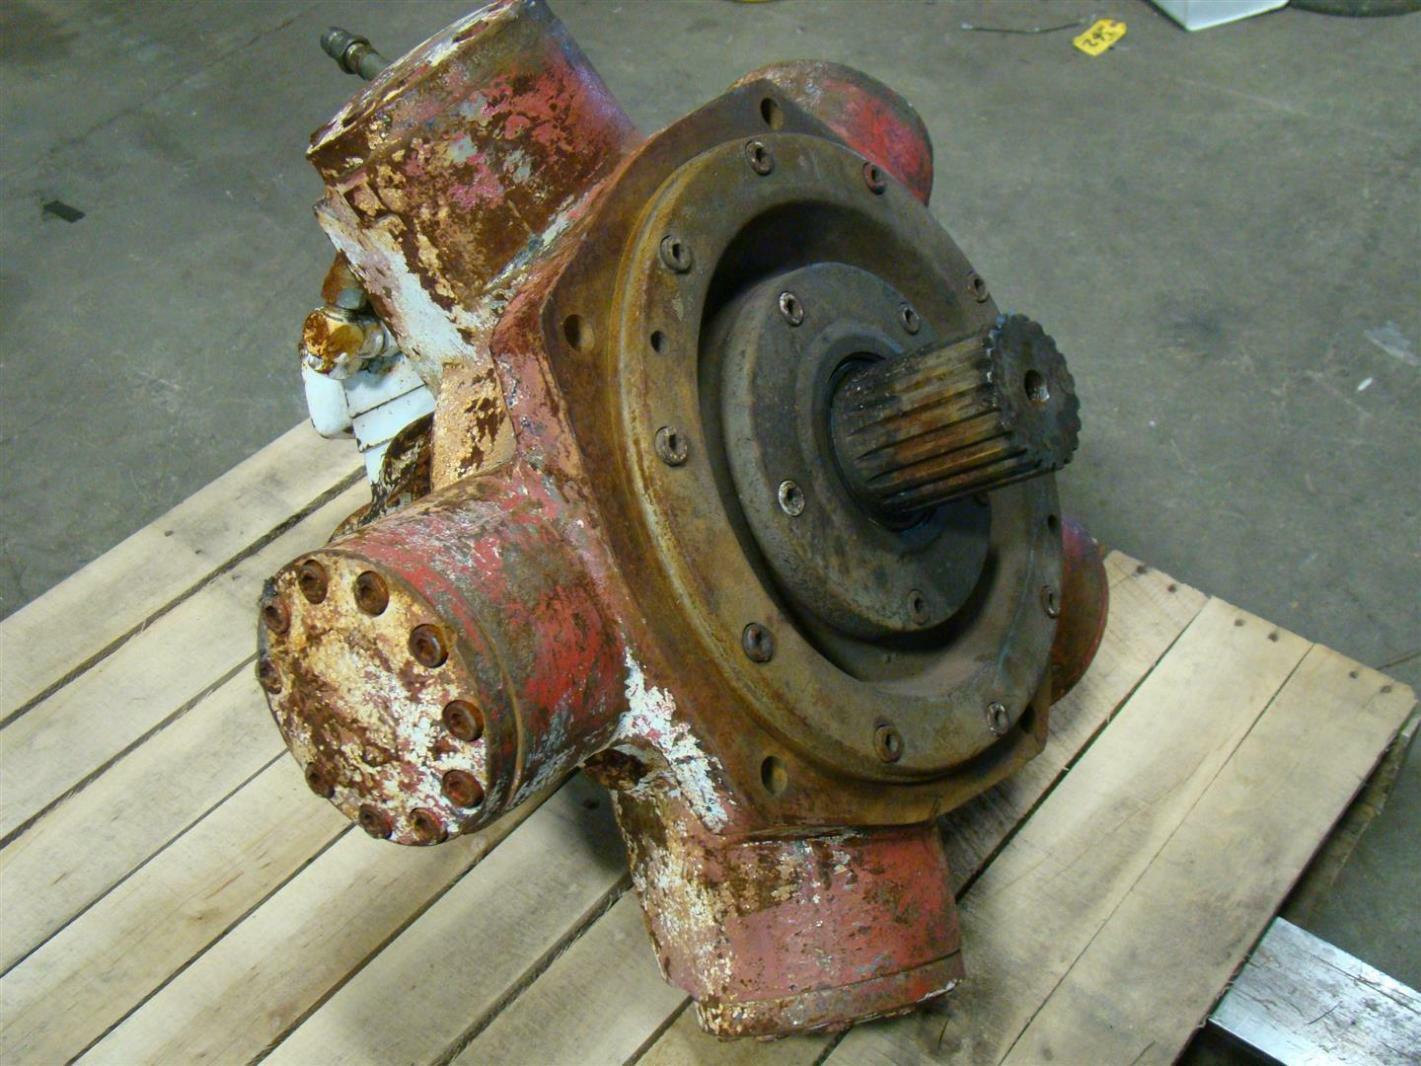 Staffa radial piston hydraulic motor s53502 ebay for Hydraulic pumps and motors for sale